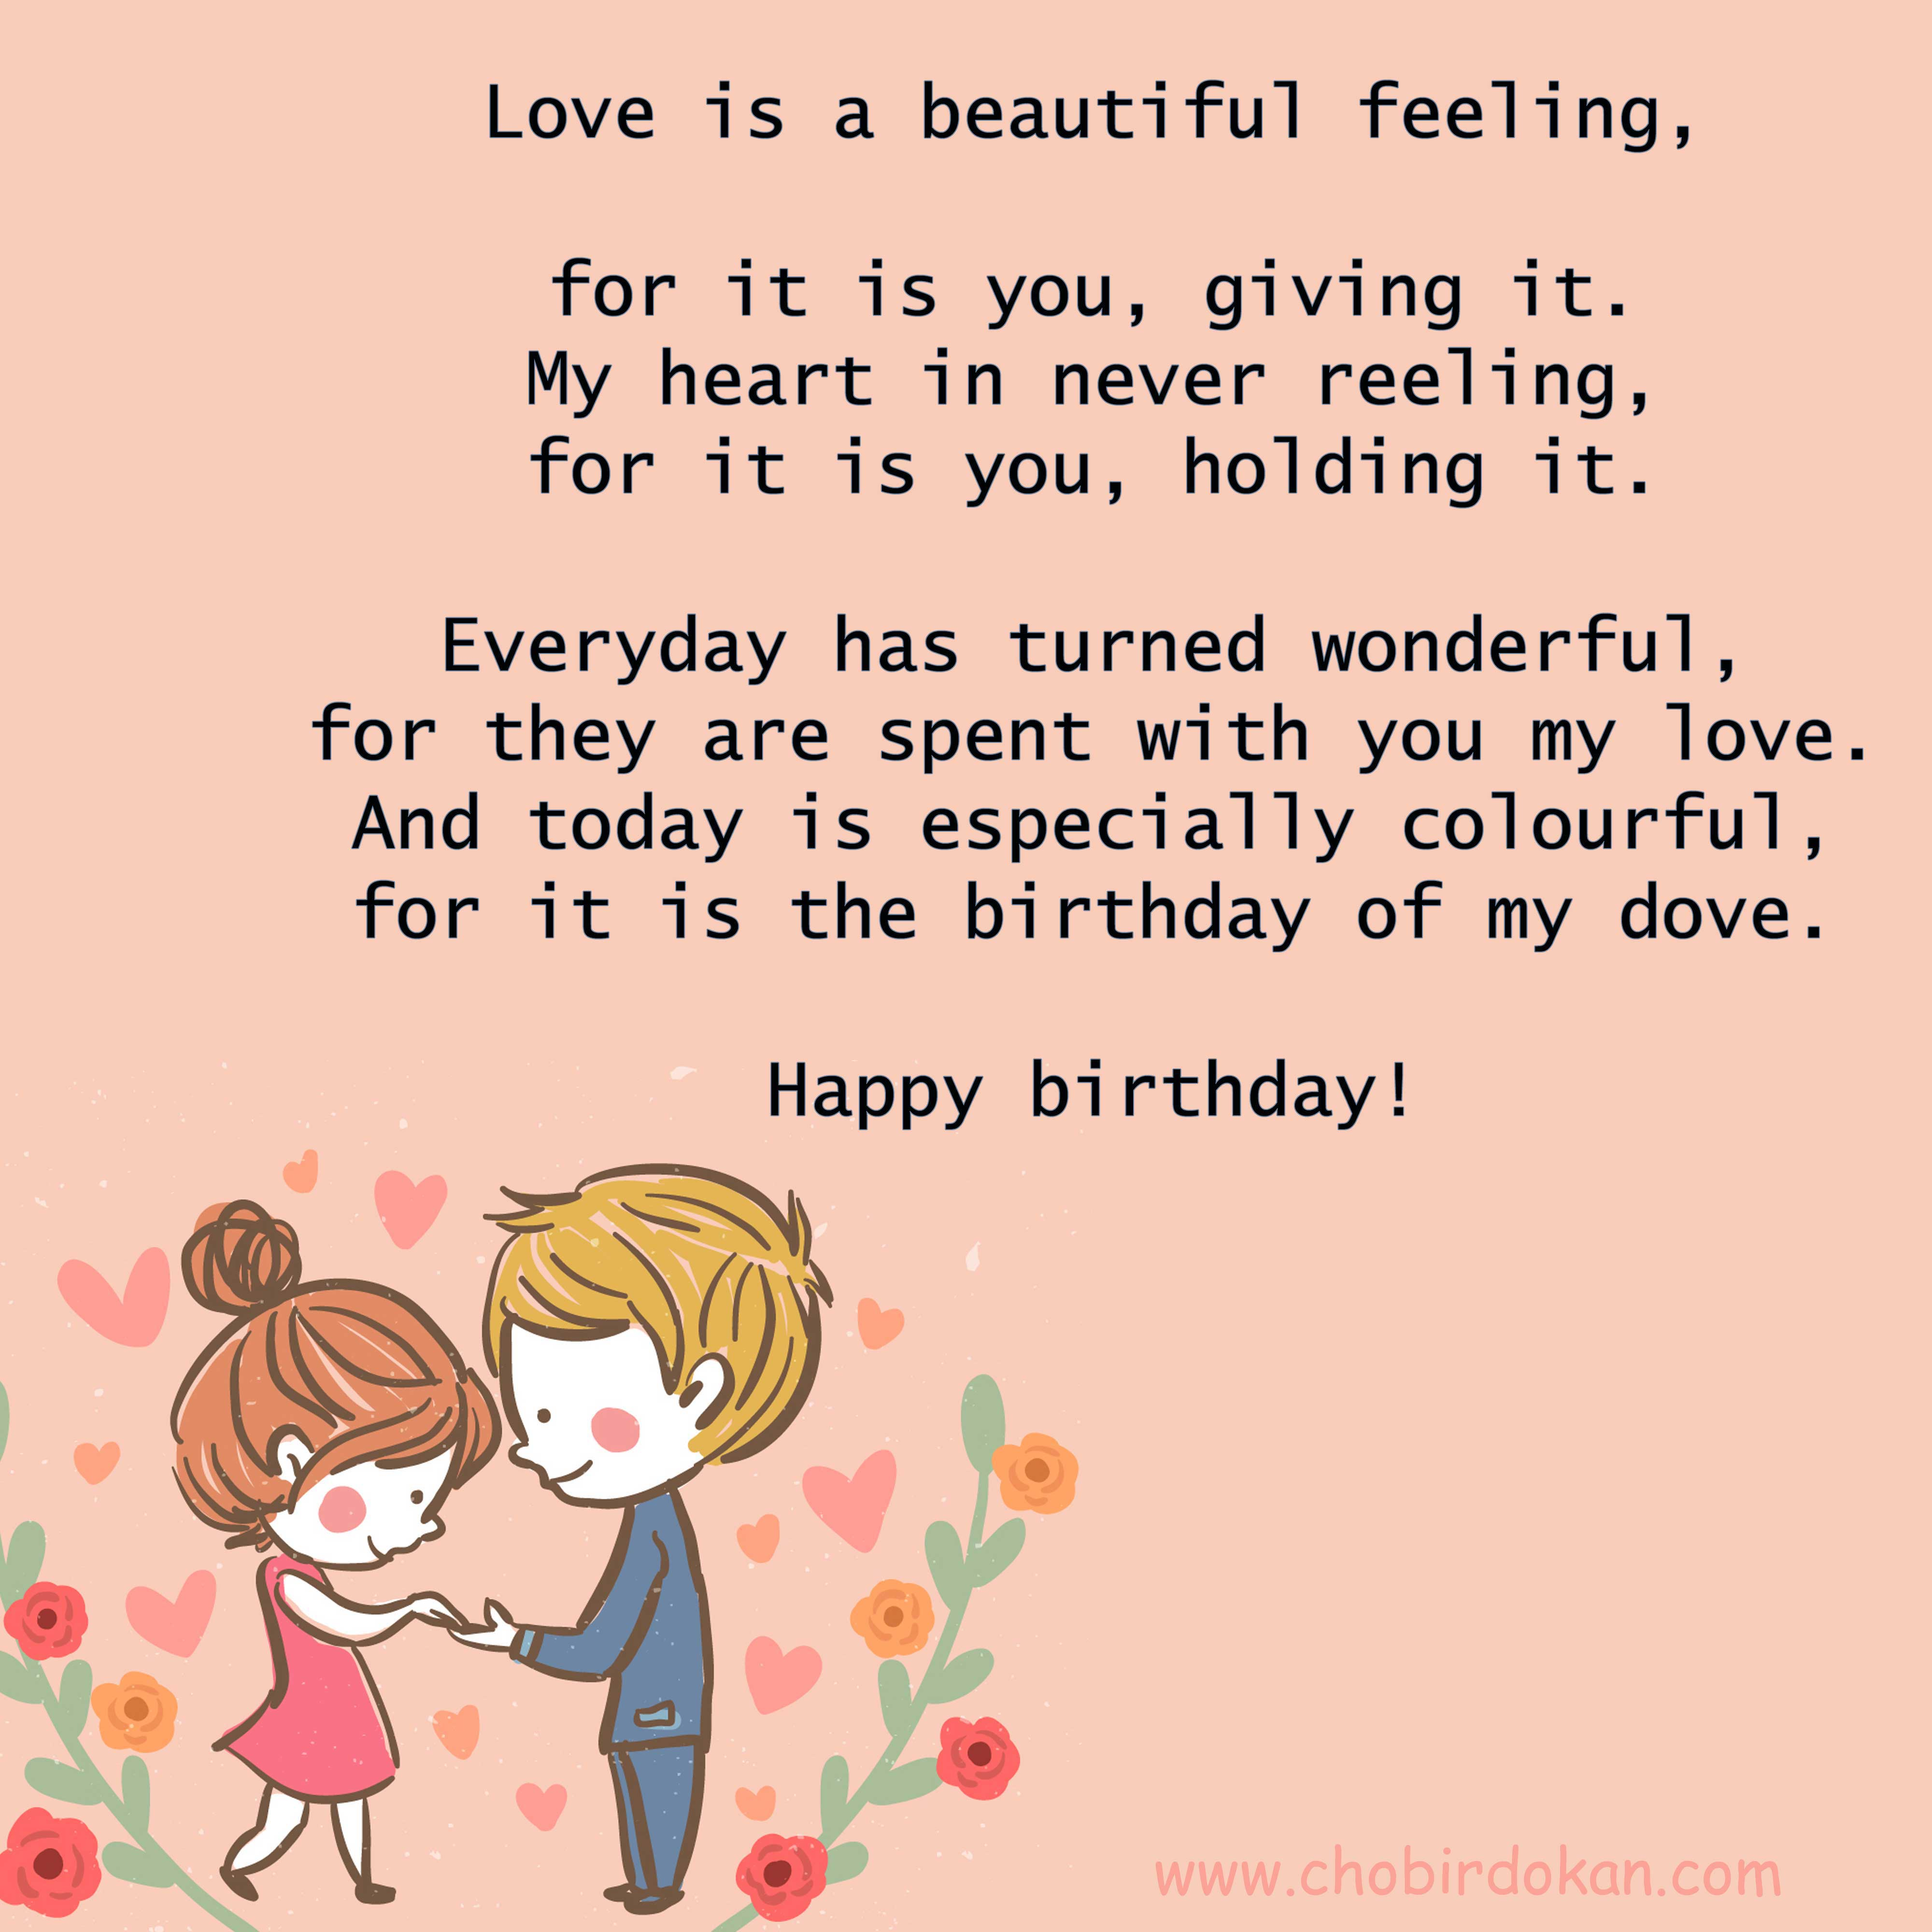 Happy Birthday Poems For Him- Cute Poetry For Boyfriend Or